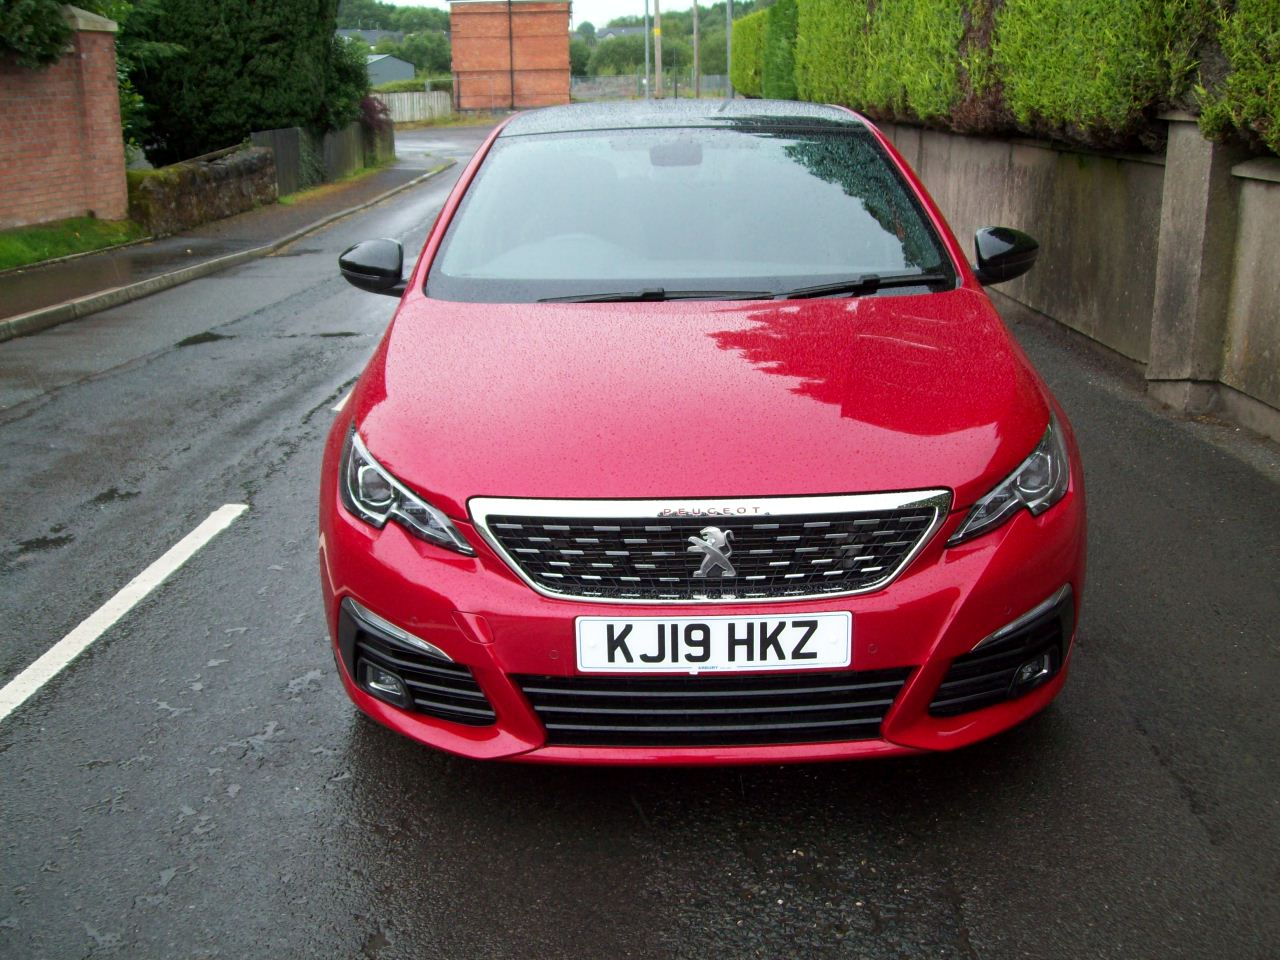 Peugeot 308 GT LINE BLUEHDI S/S for sale at Derek Loane ...